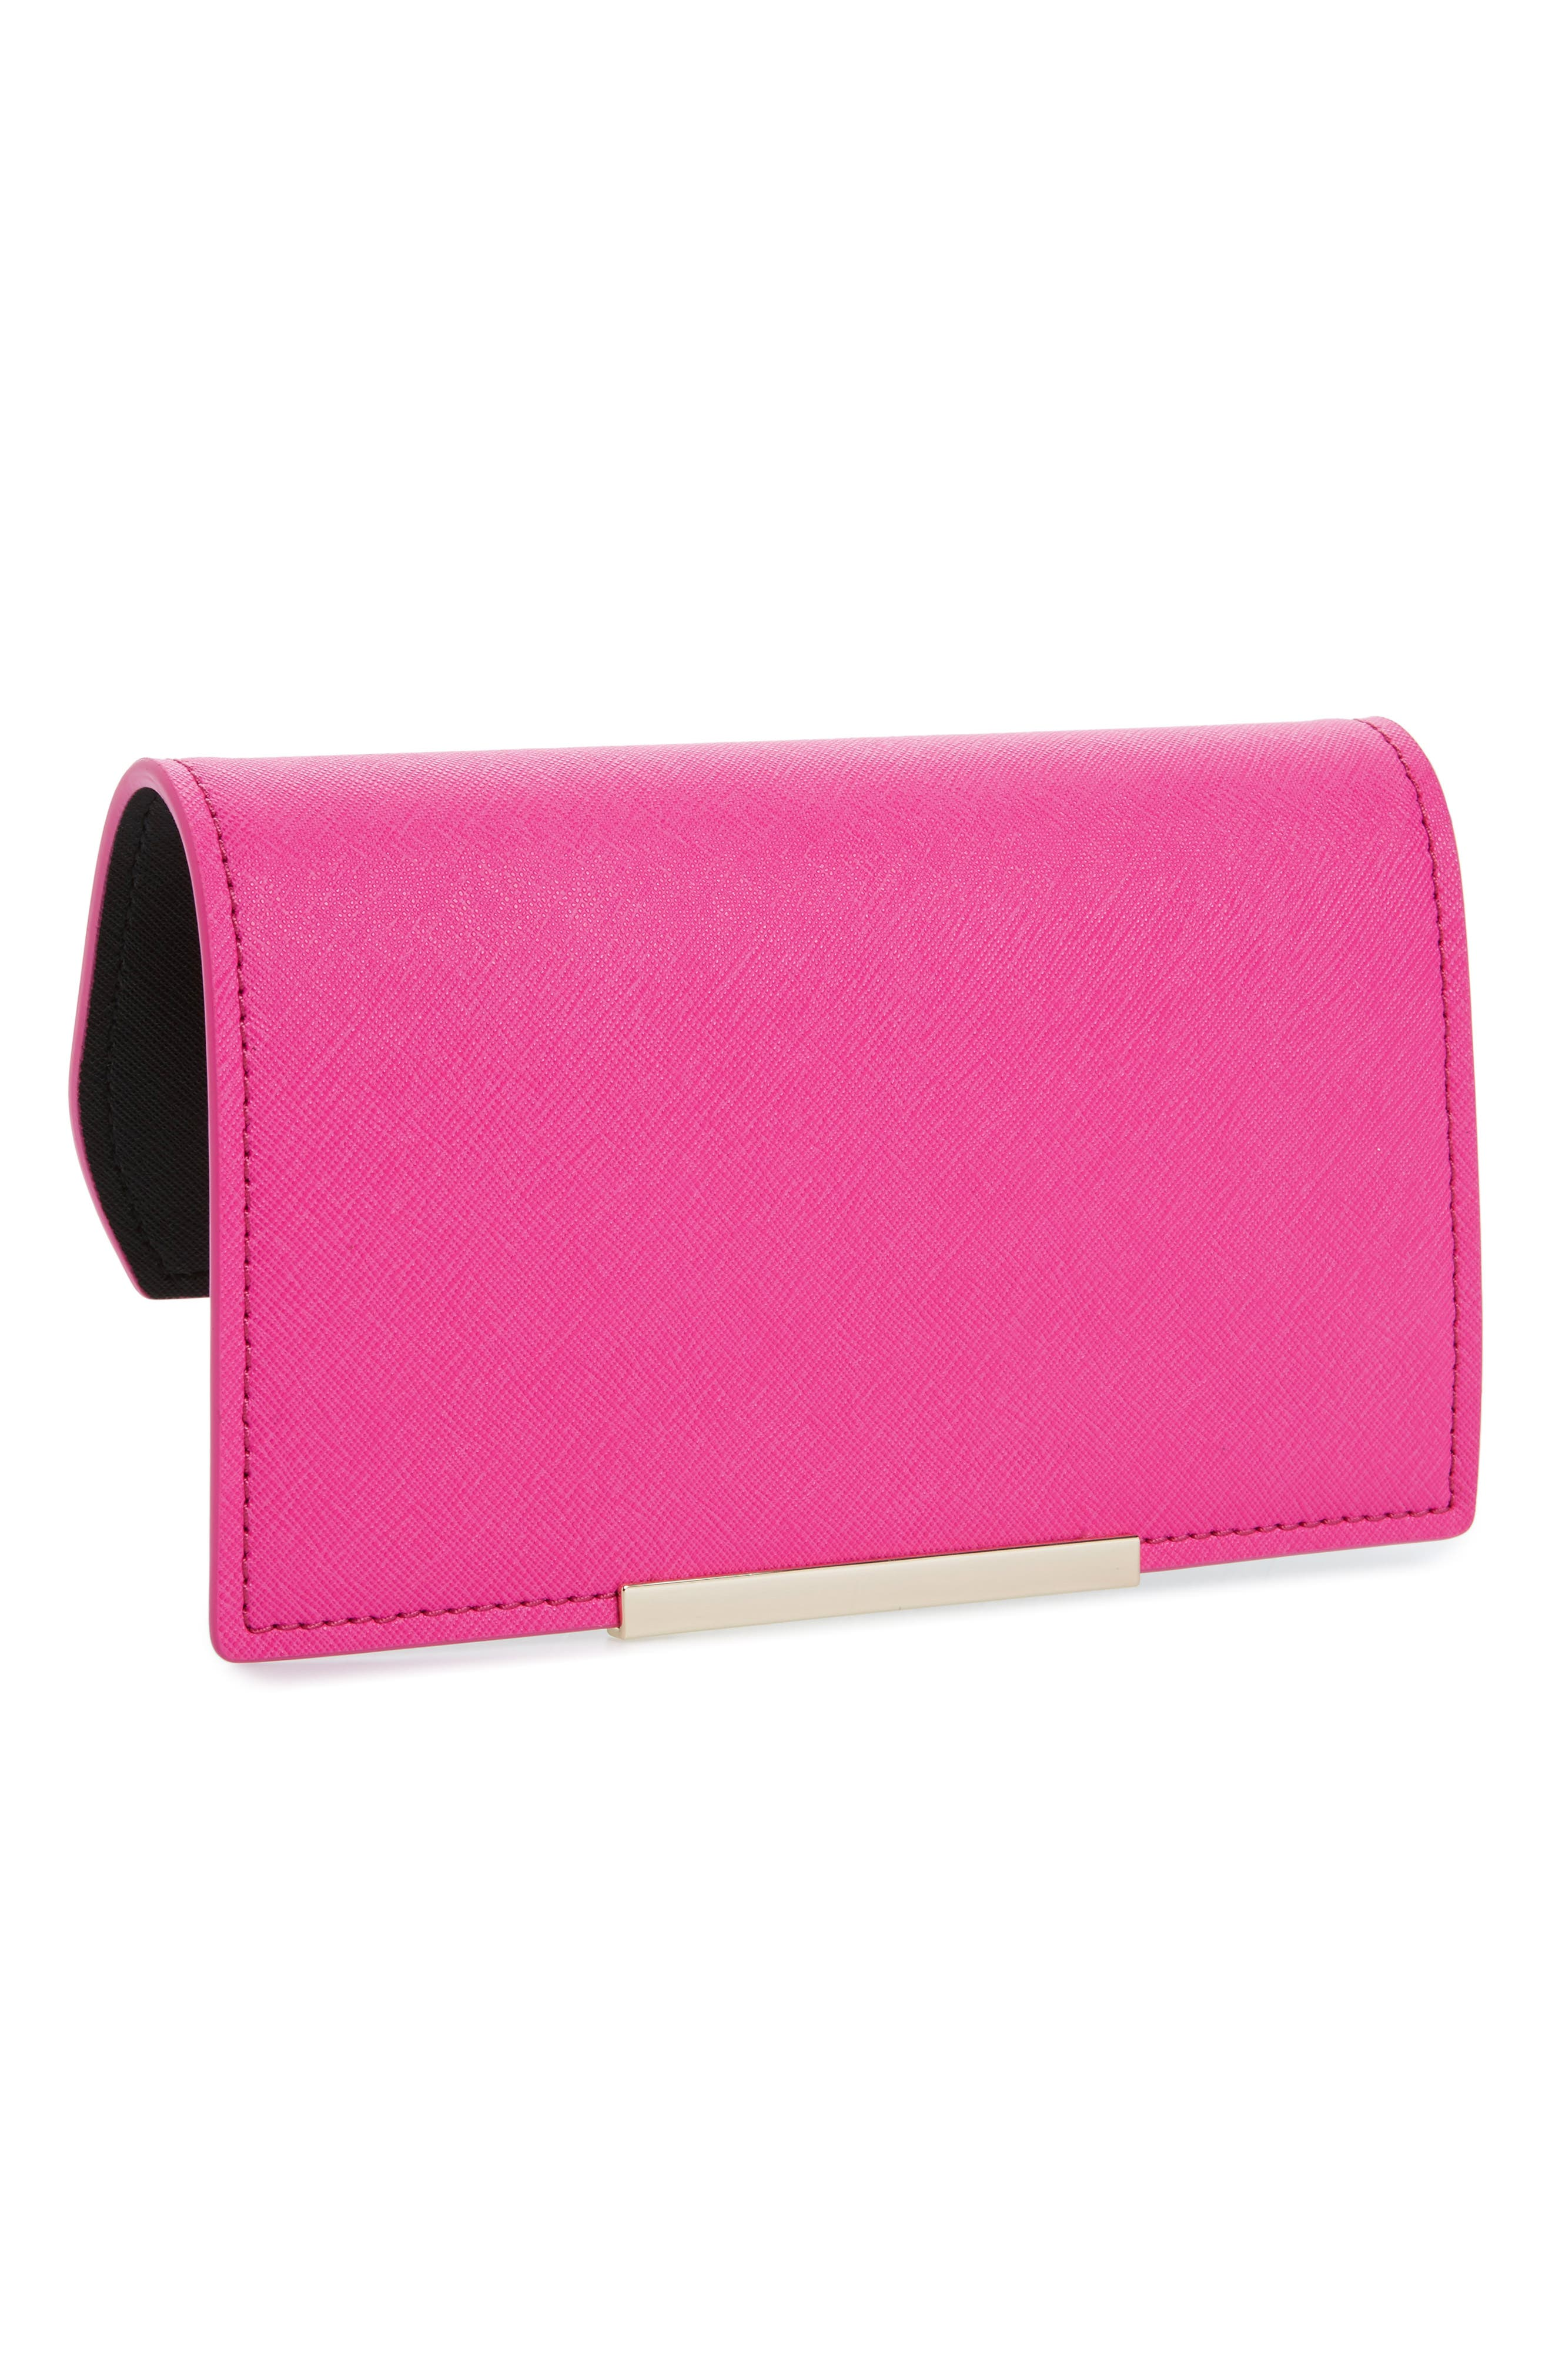 kate spade new york make it mine leather snap-on accent flap